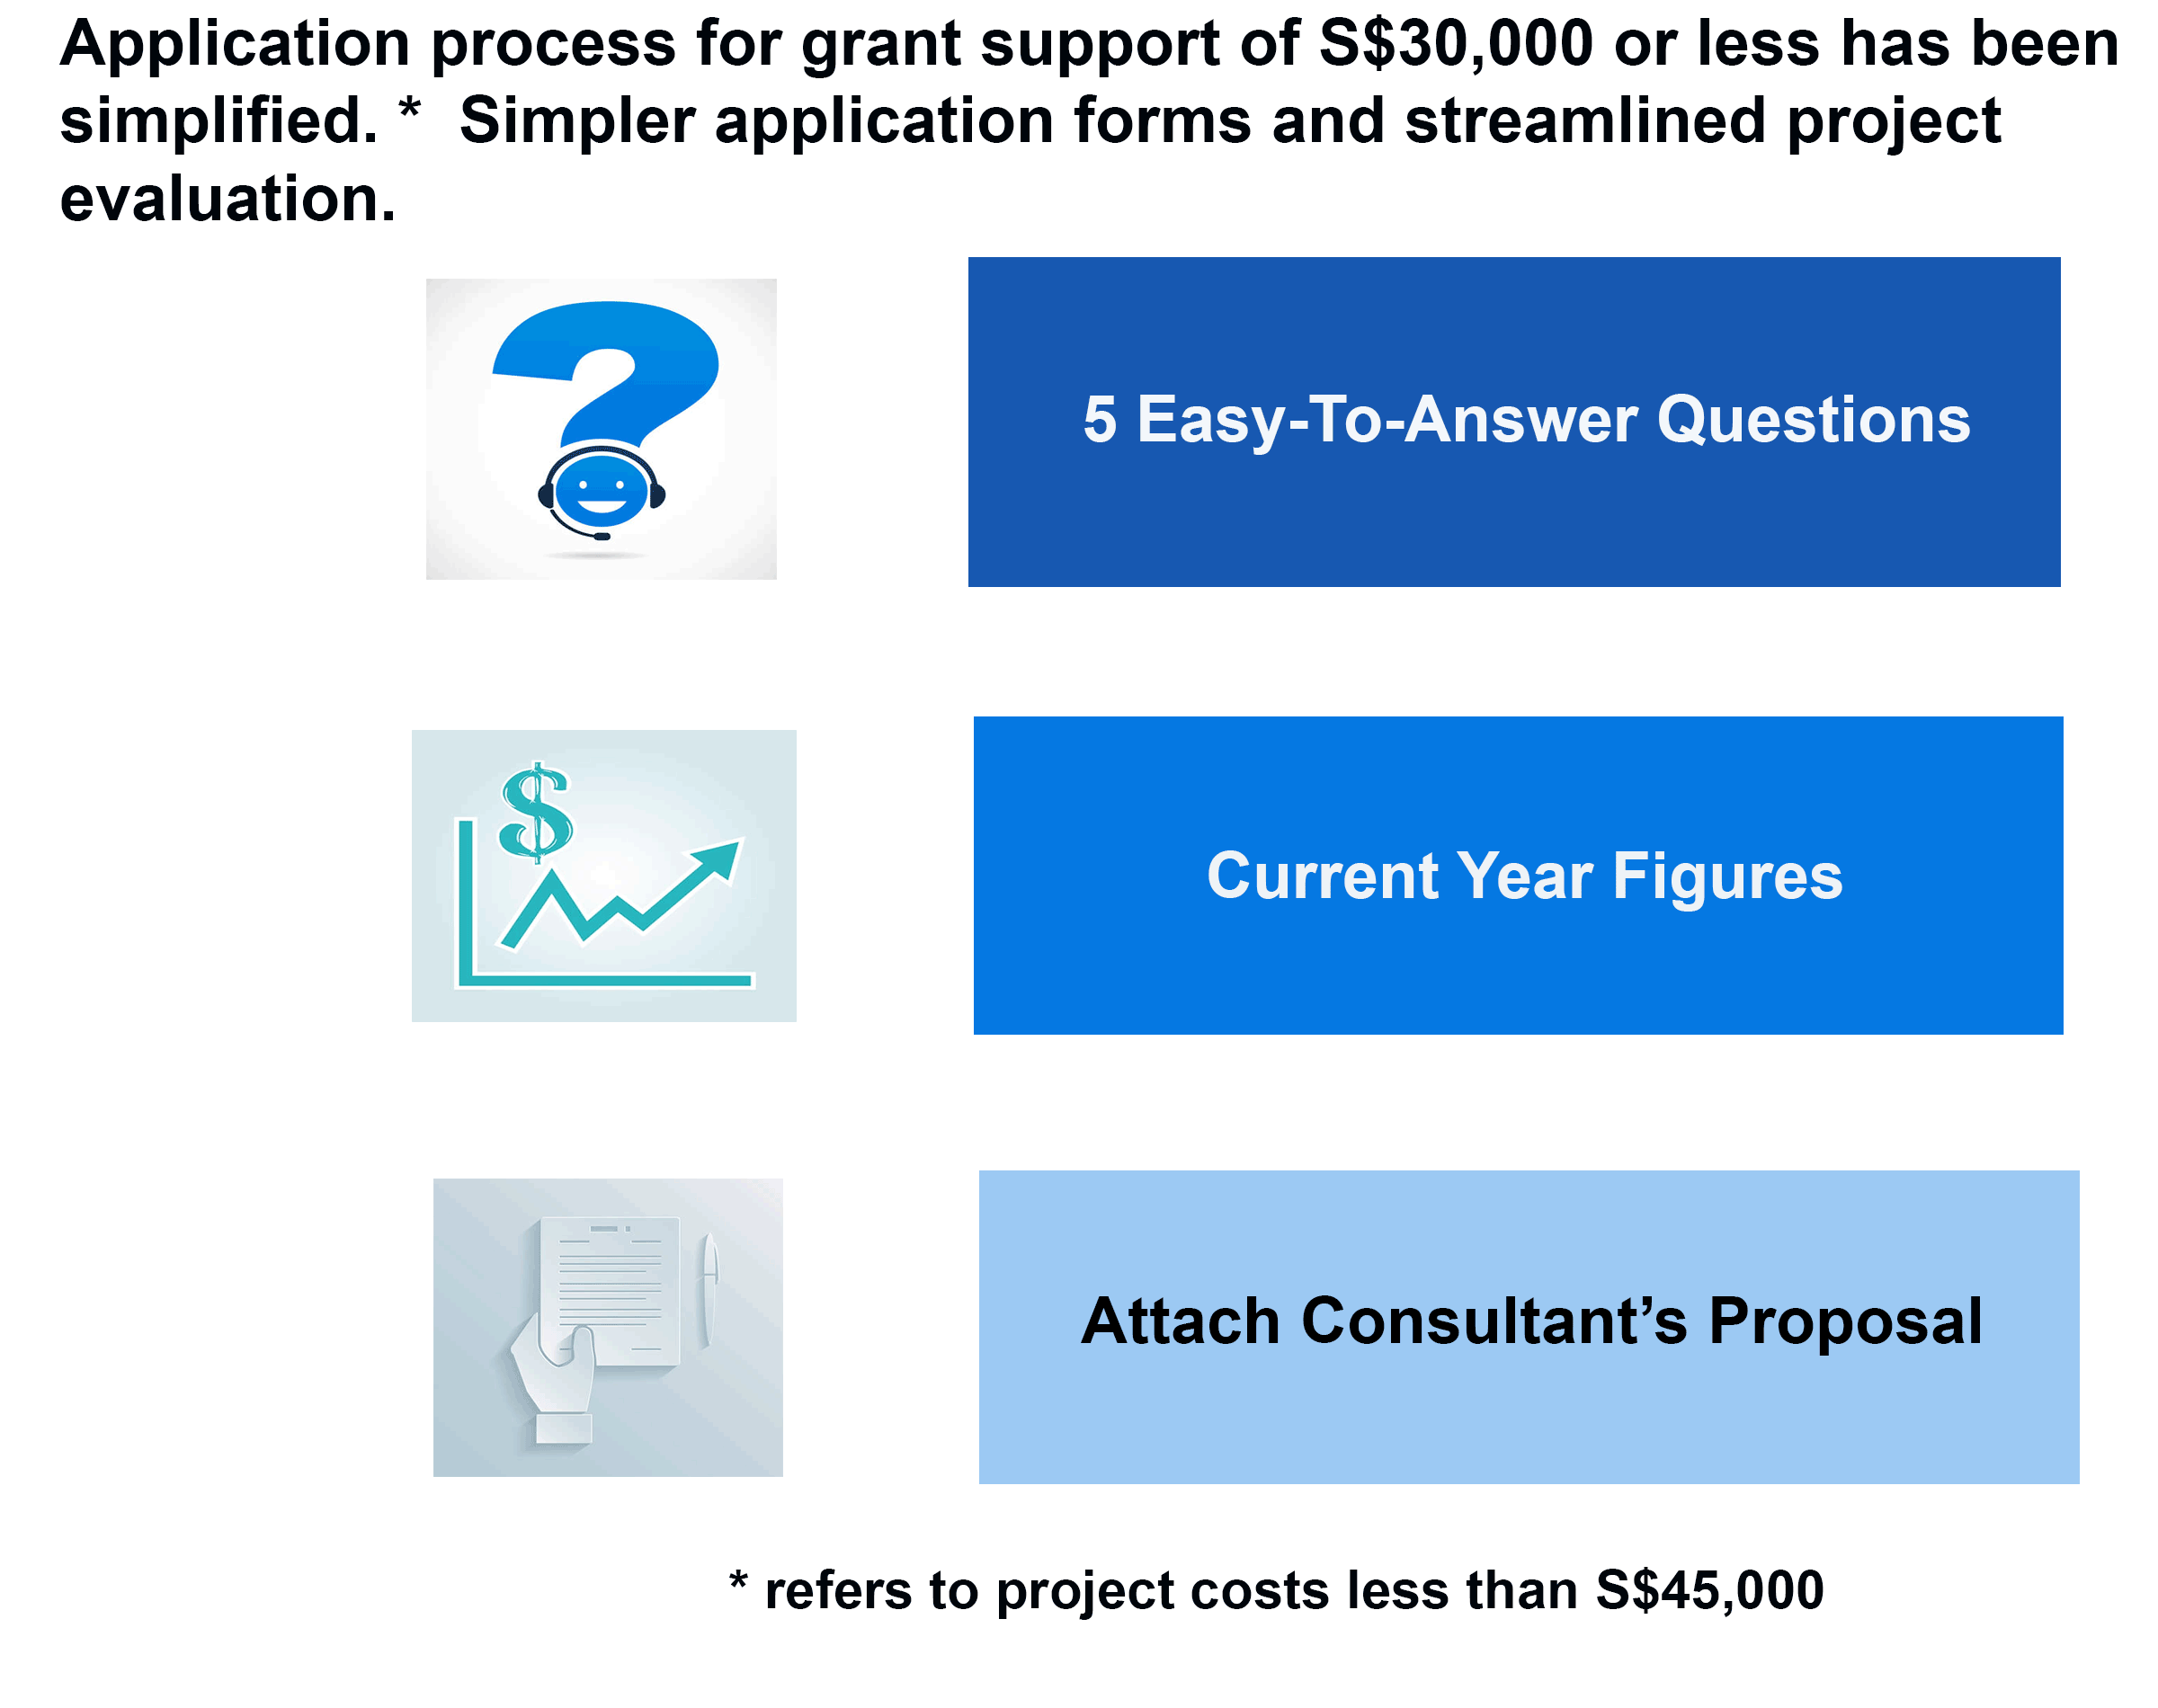 CDG simplified application process